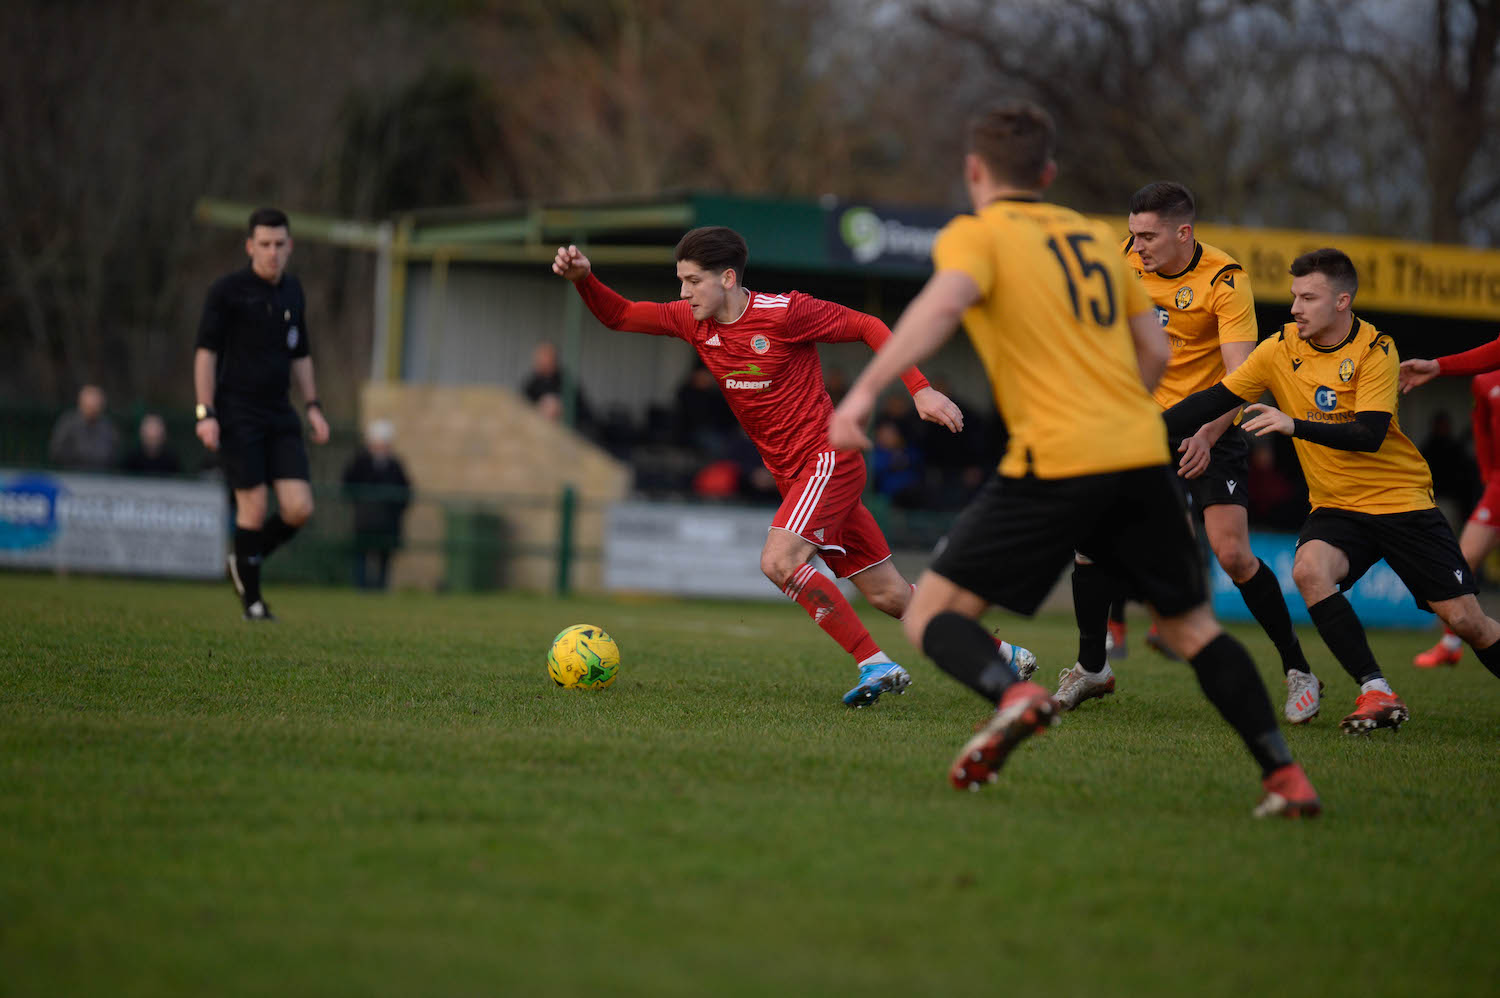 Read the full article - Reds grind out well-Earnt draw at Rookery Hill